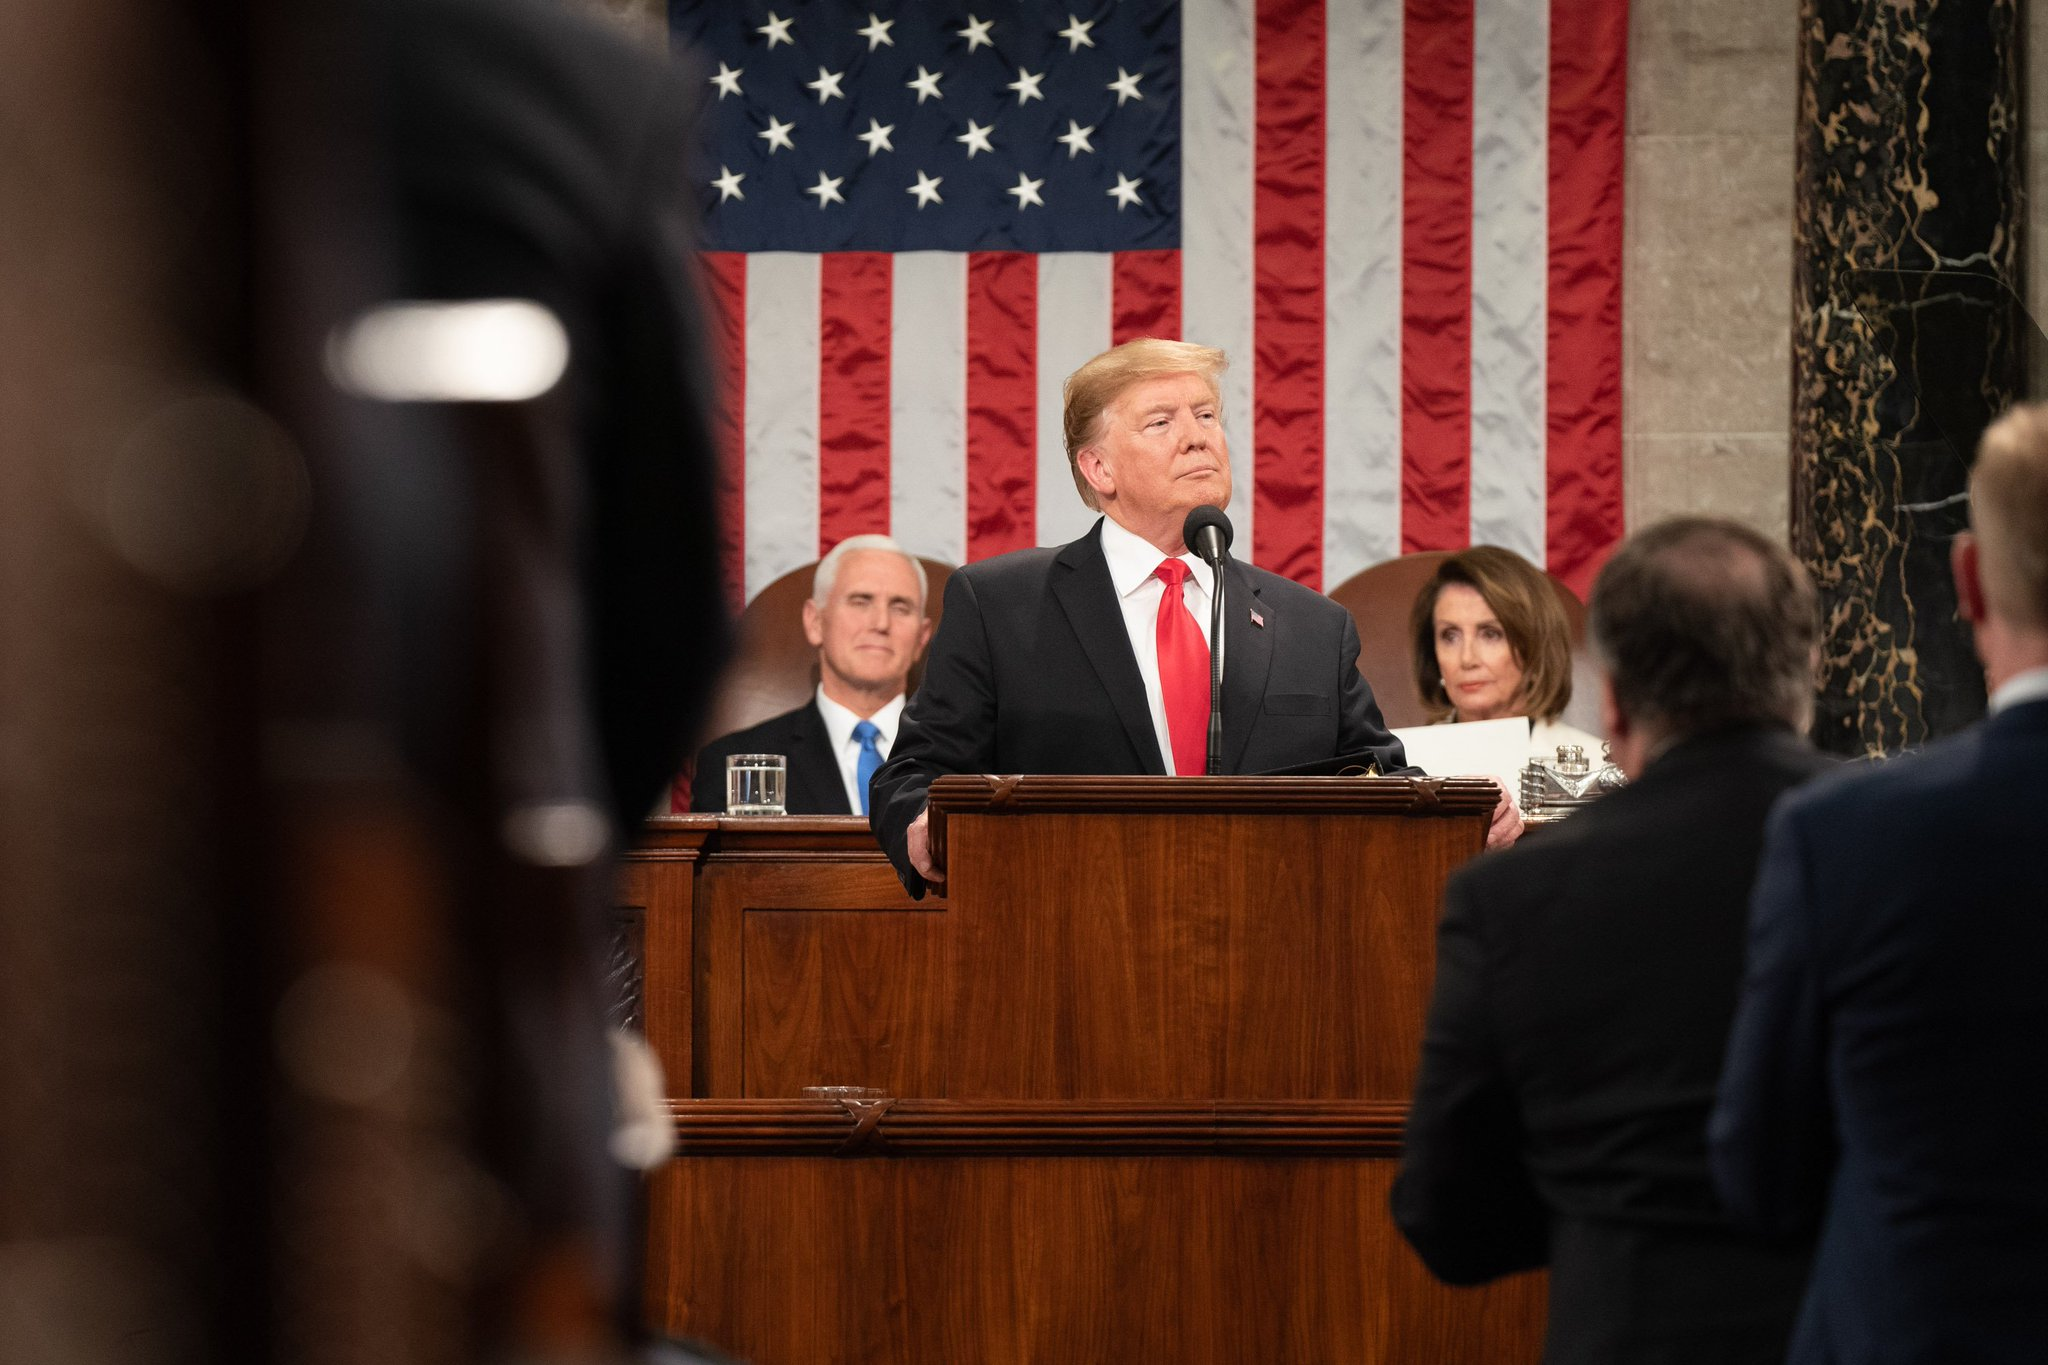 Take a look back at President Trump's second State of the Union Address in photos: https://t.co/P7XwyIjpMZ https://t.co/2jFUeIyIKD